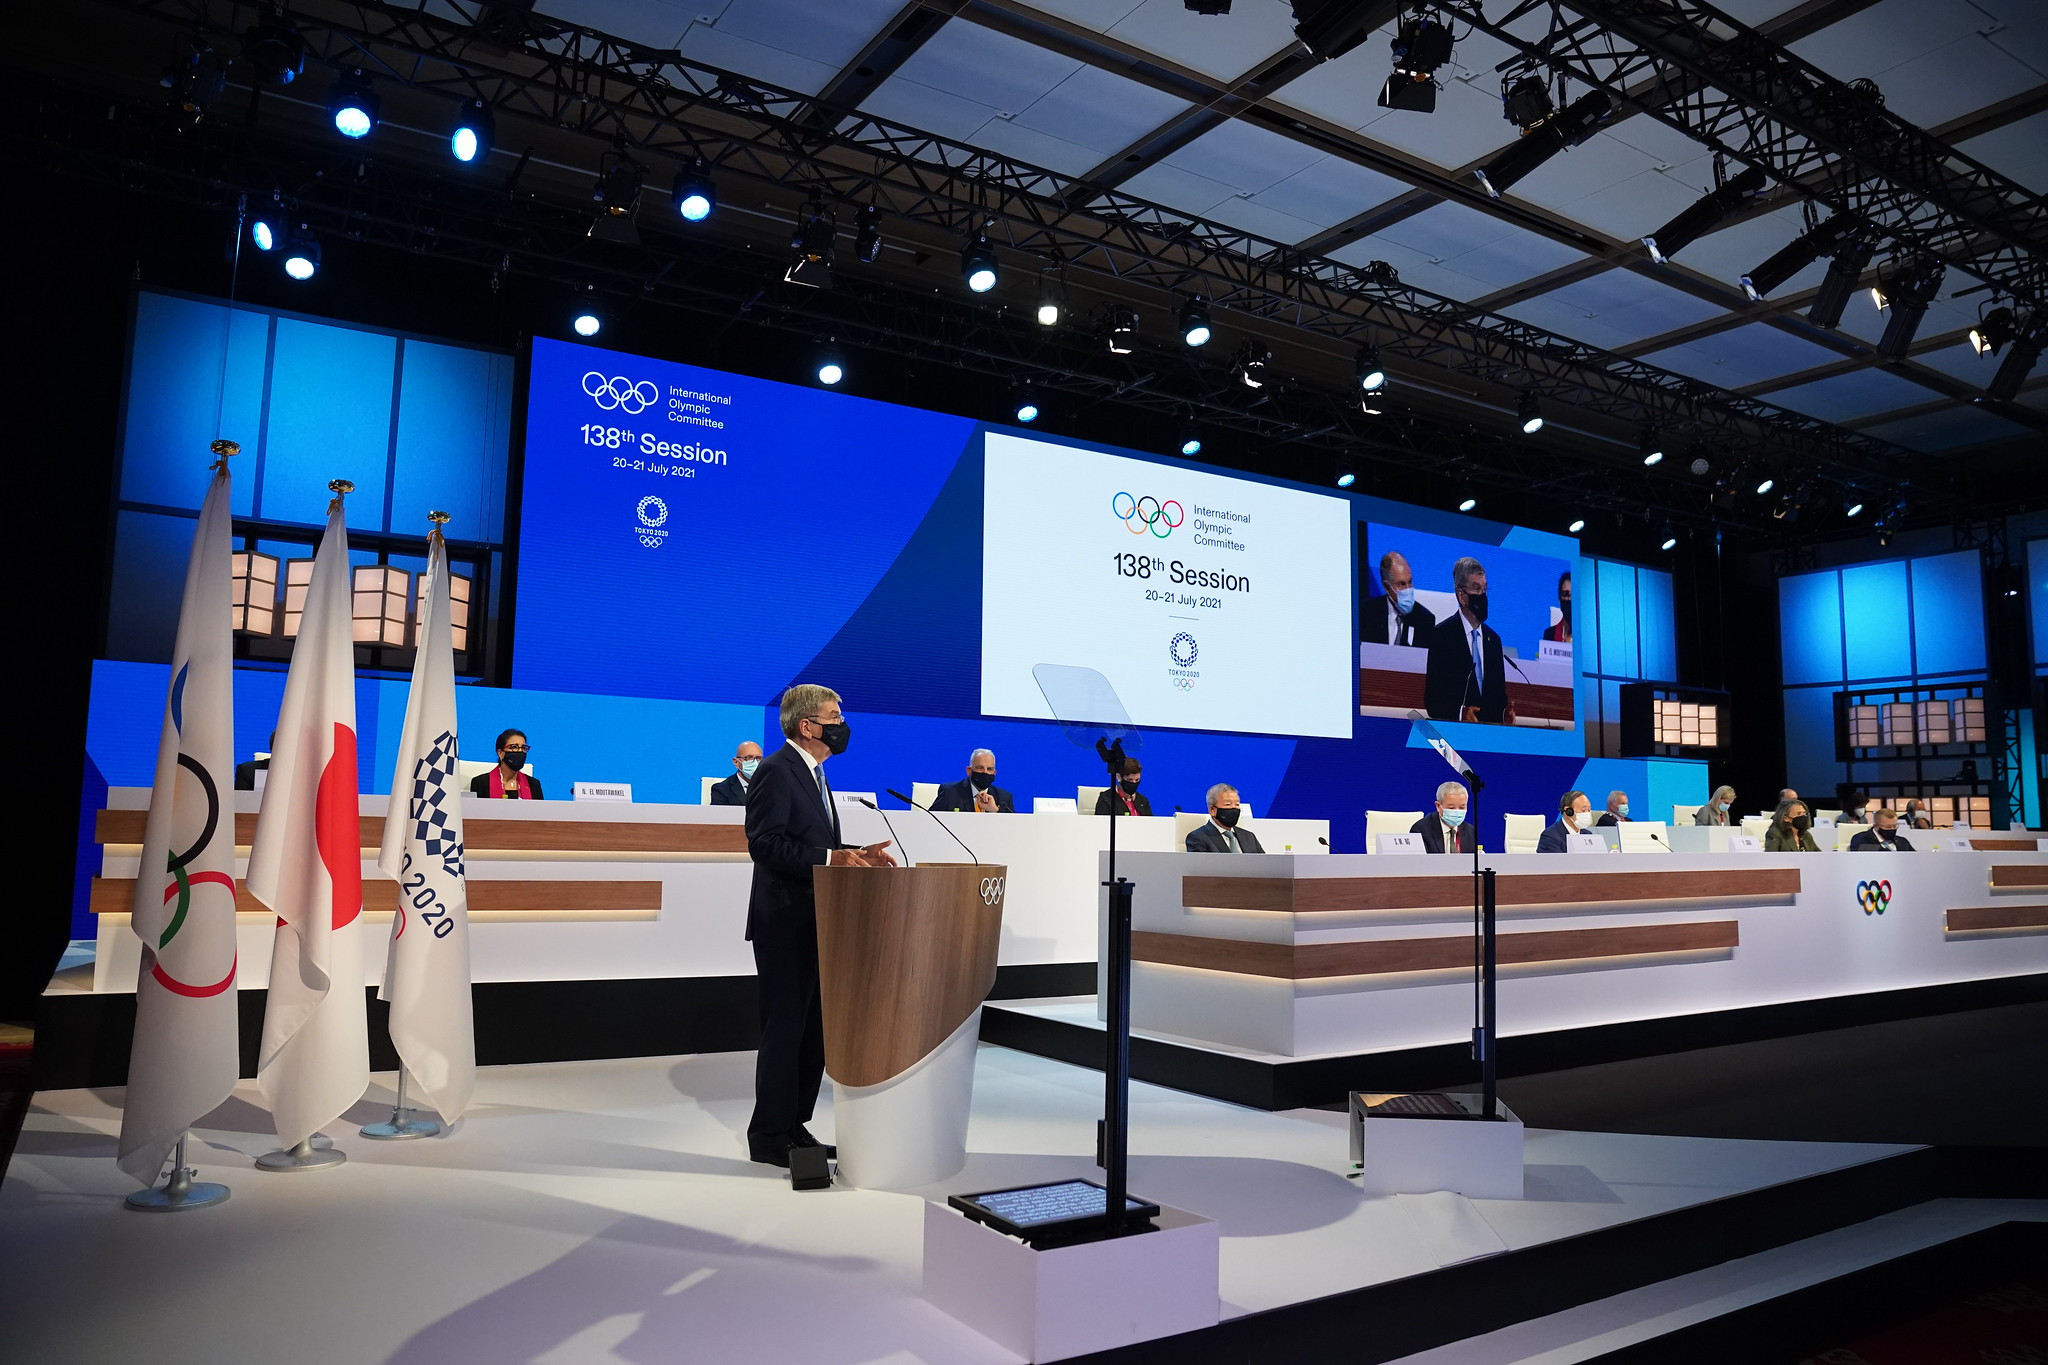 """Bach hails healthcare workers as """"true champions"""" amid COVID-19 pandemic during opening speech at IOC Session"""